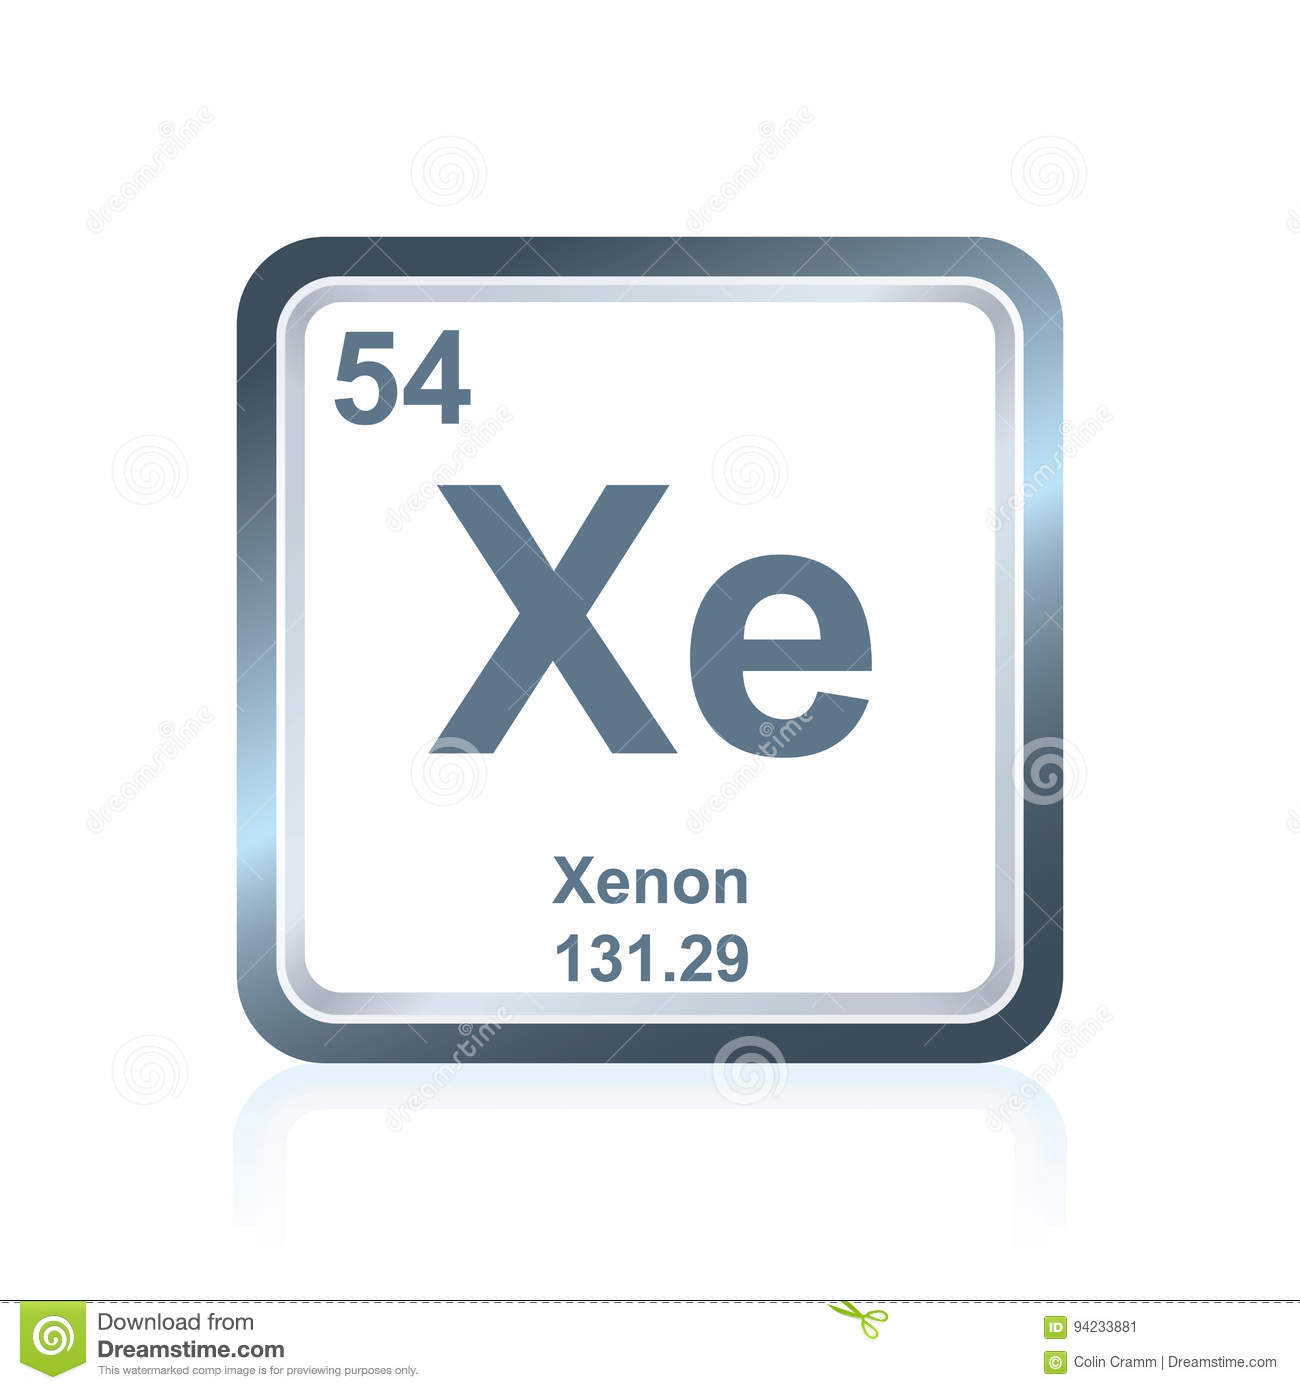 Xenon periodic table facts choice image periodic table images xenon periodic table aviongoldcorp chemical element xenon from the periodic table stock ilration gamestrikefo choice image gamestrikefo Gallery